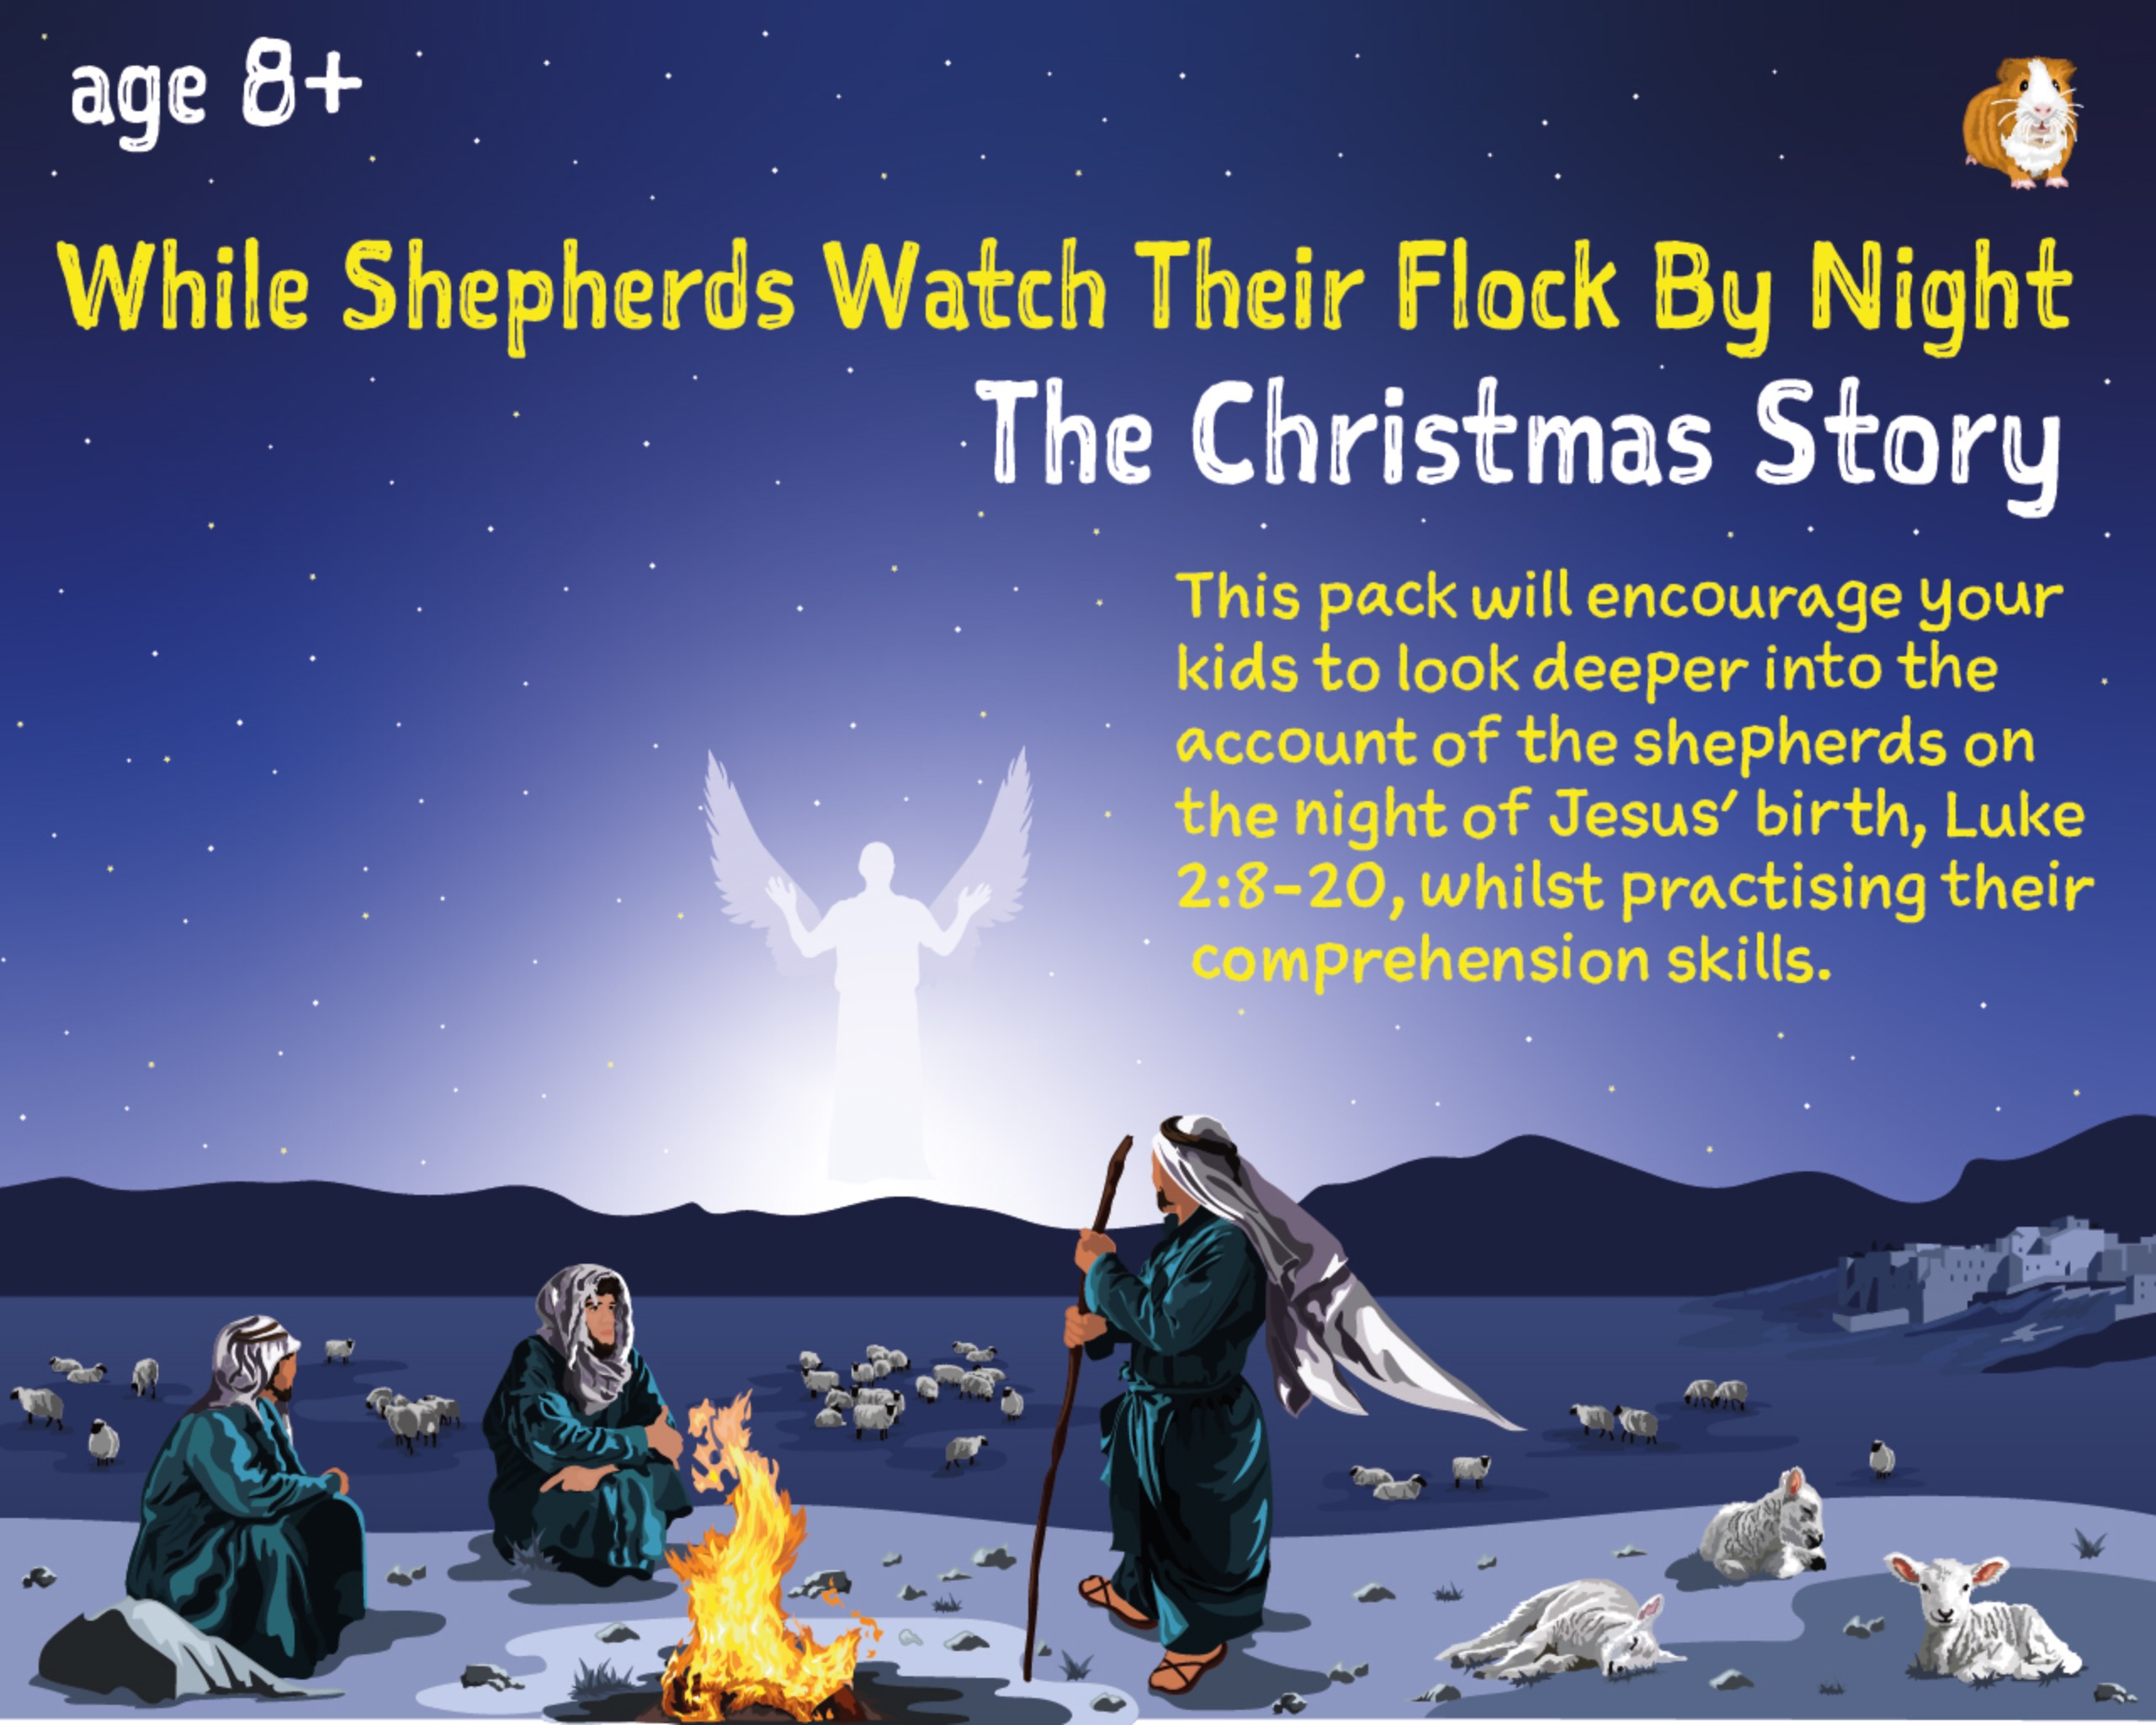 While Shepherds Watch Their Flock By Night: The Christmas Story (8-12 years)